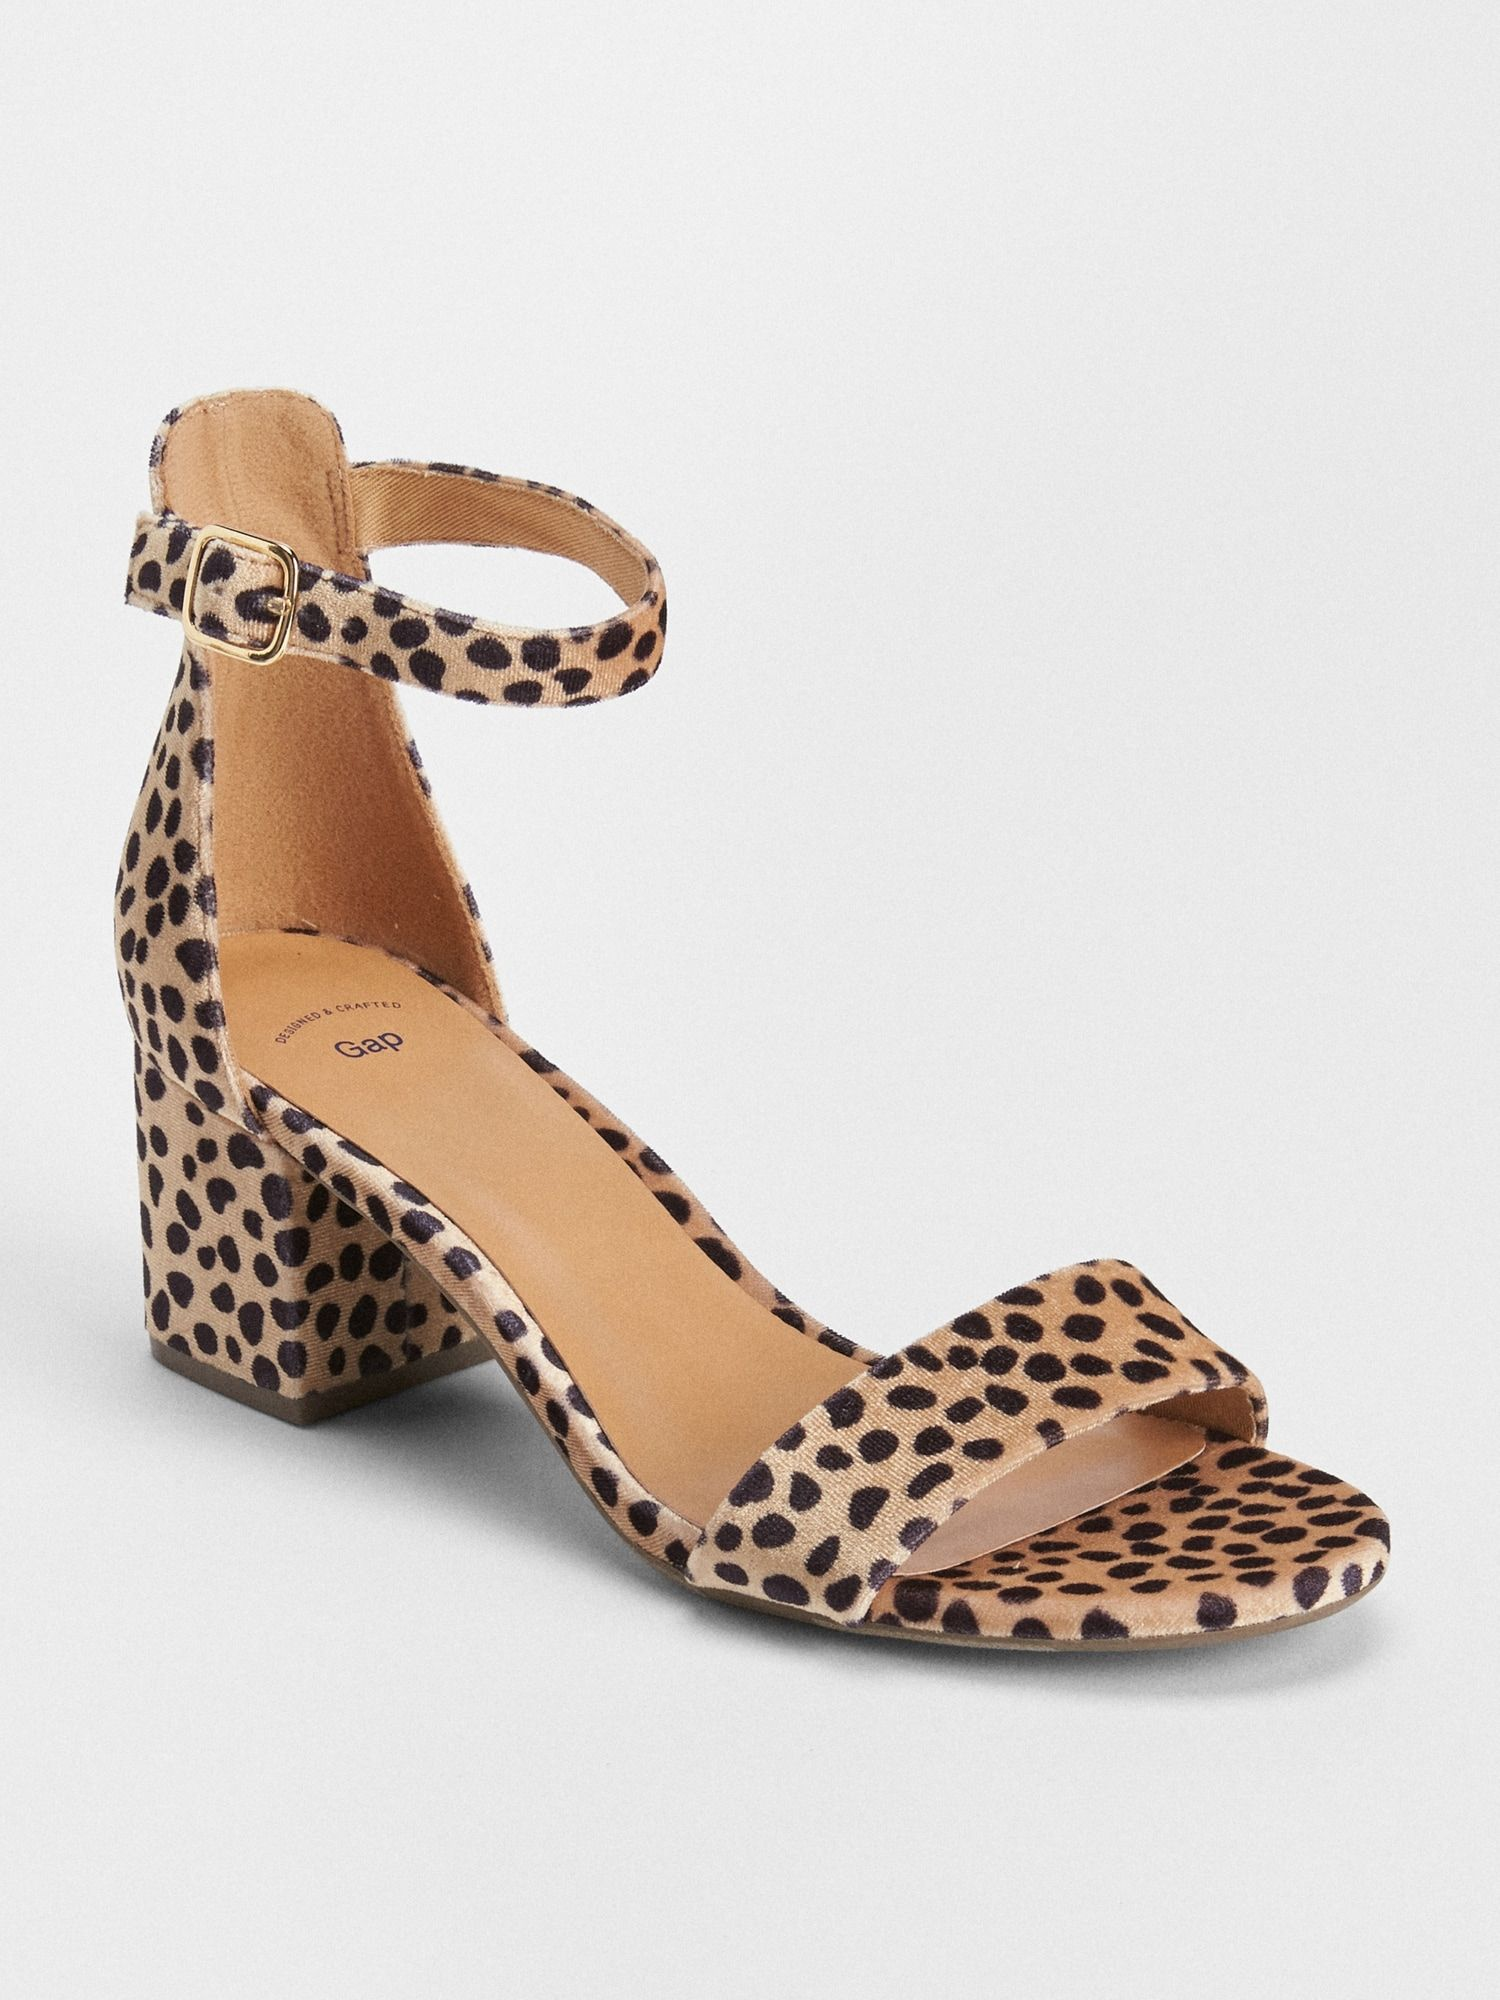 70bf36f2636 Cheetah Block Heel from GAP